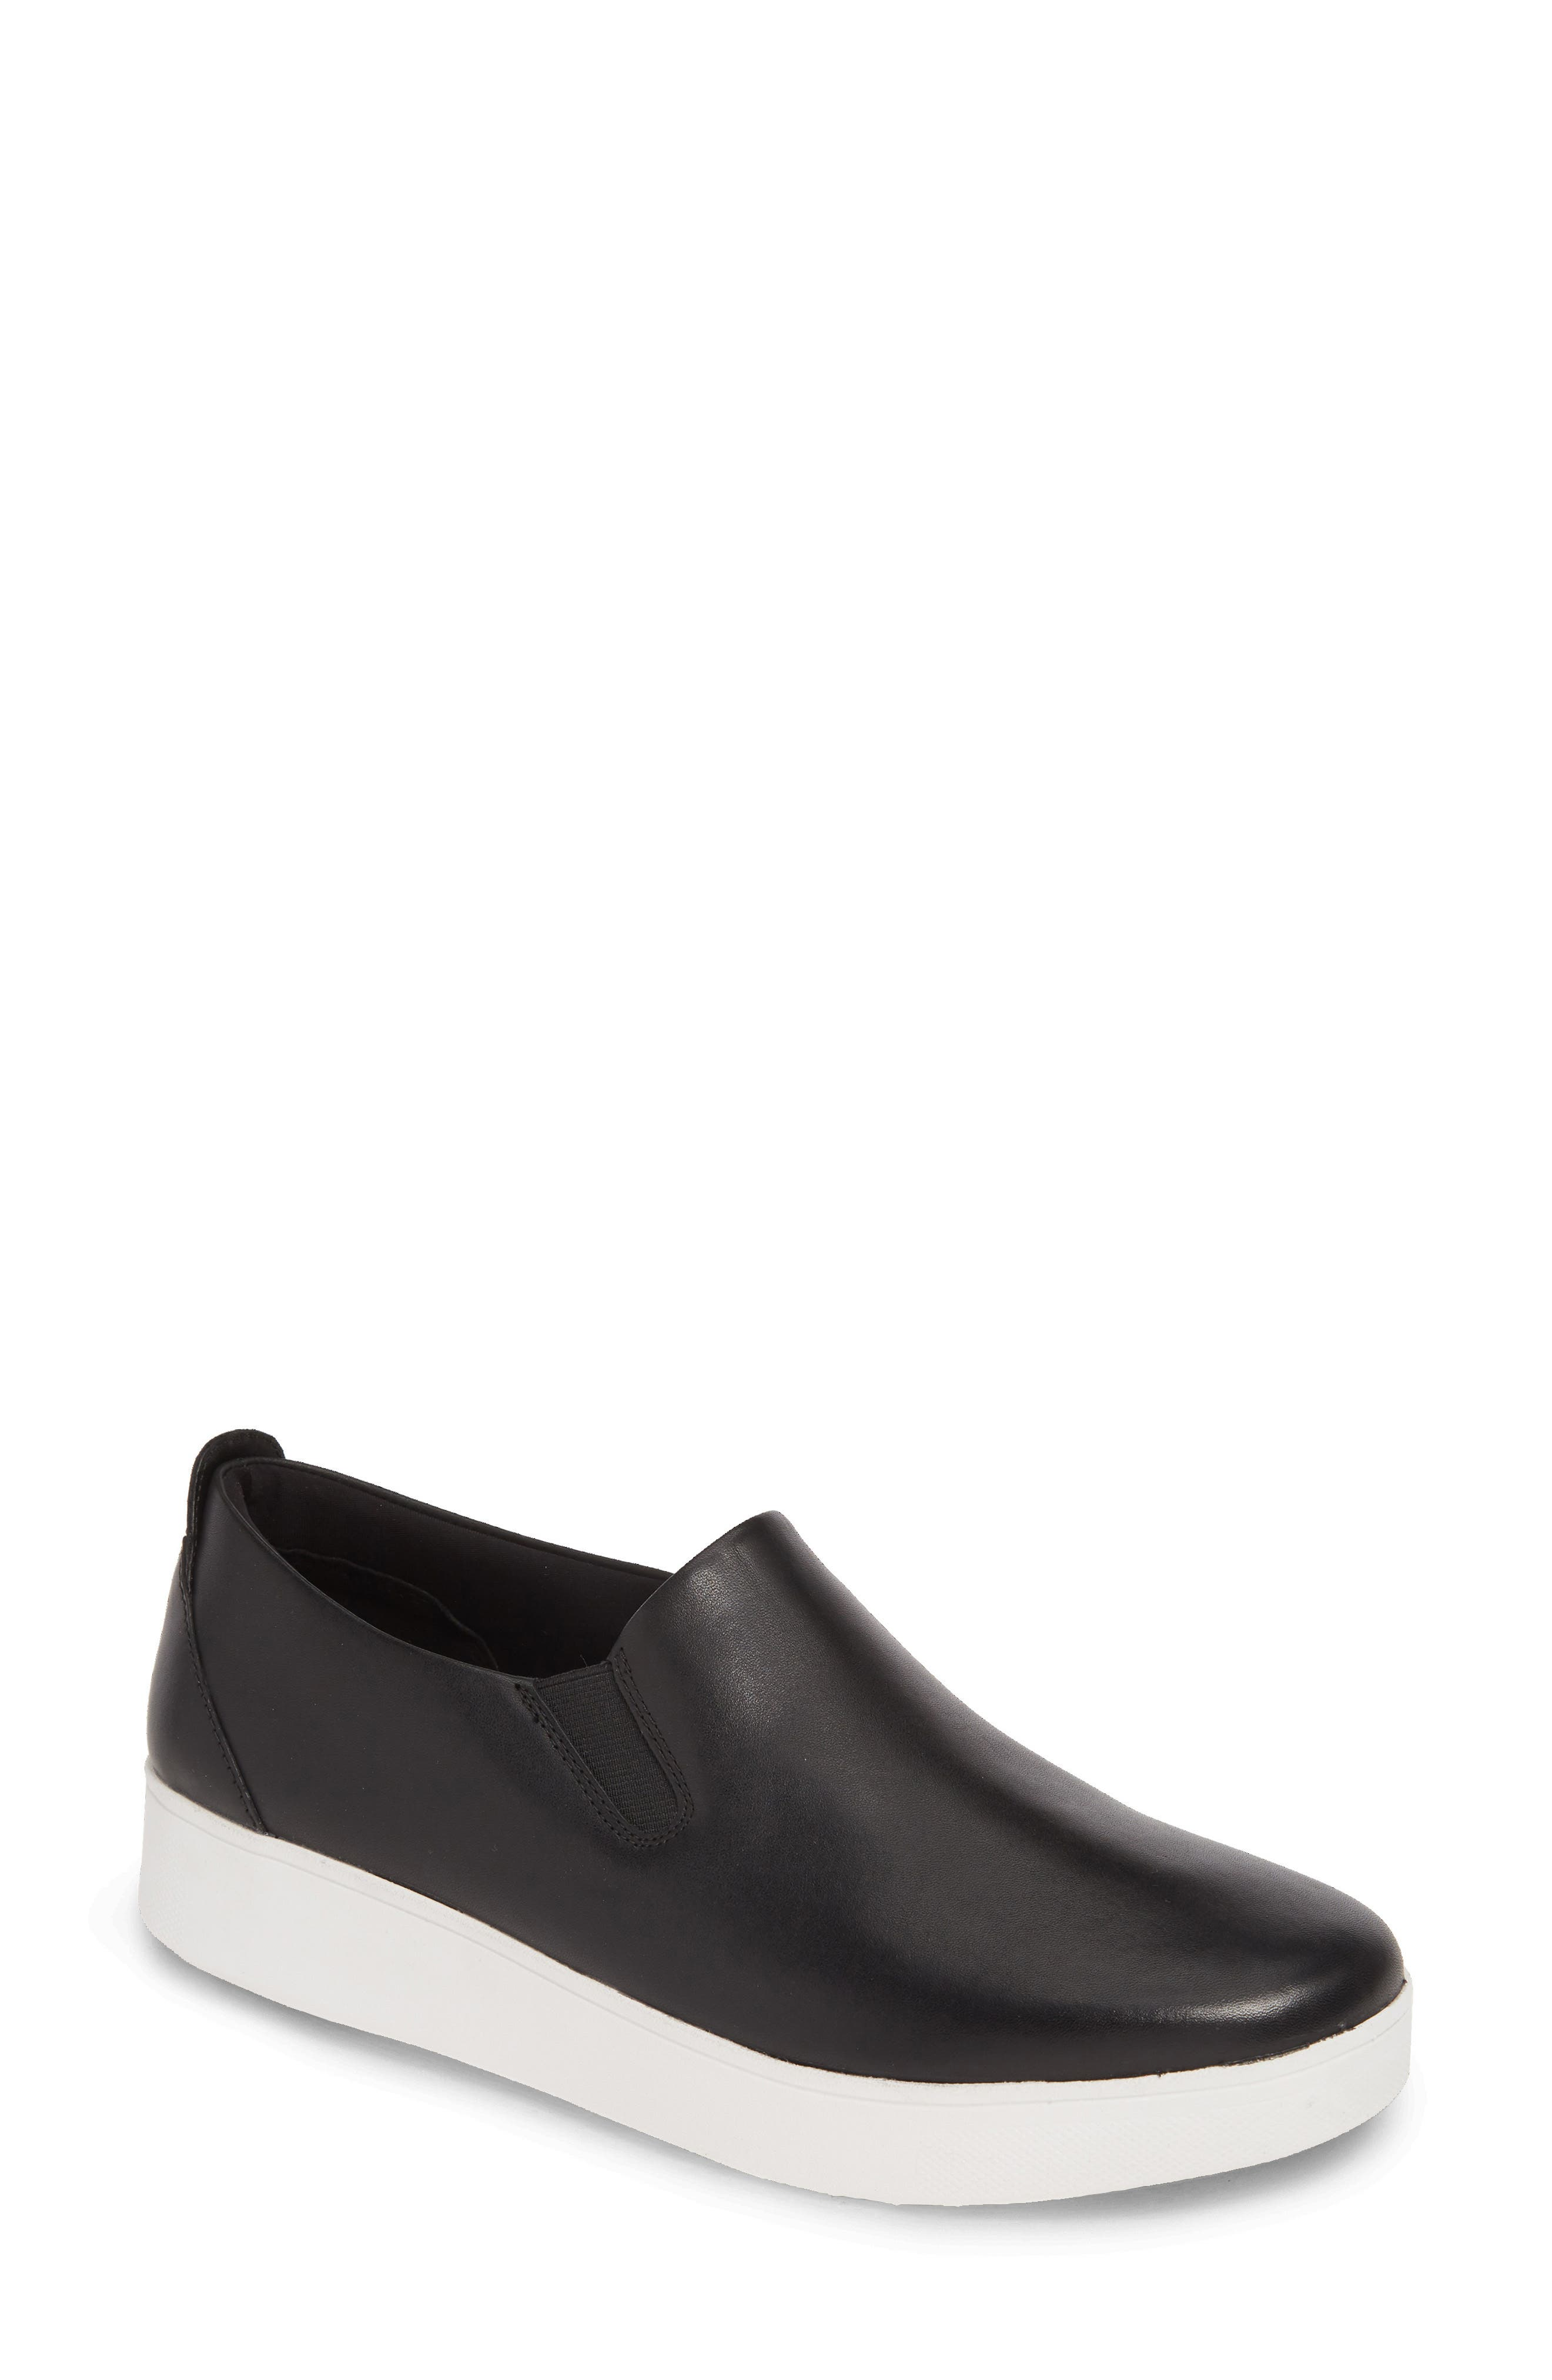 fitflop loafer sale